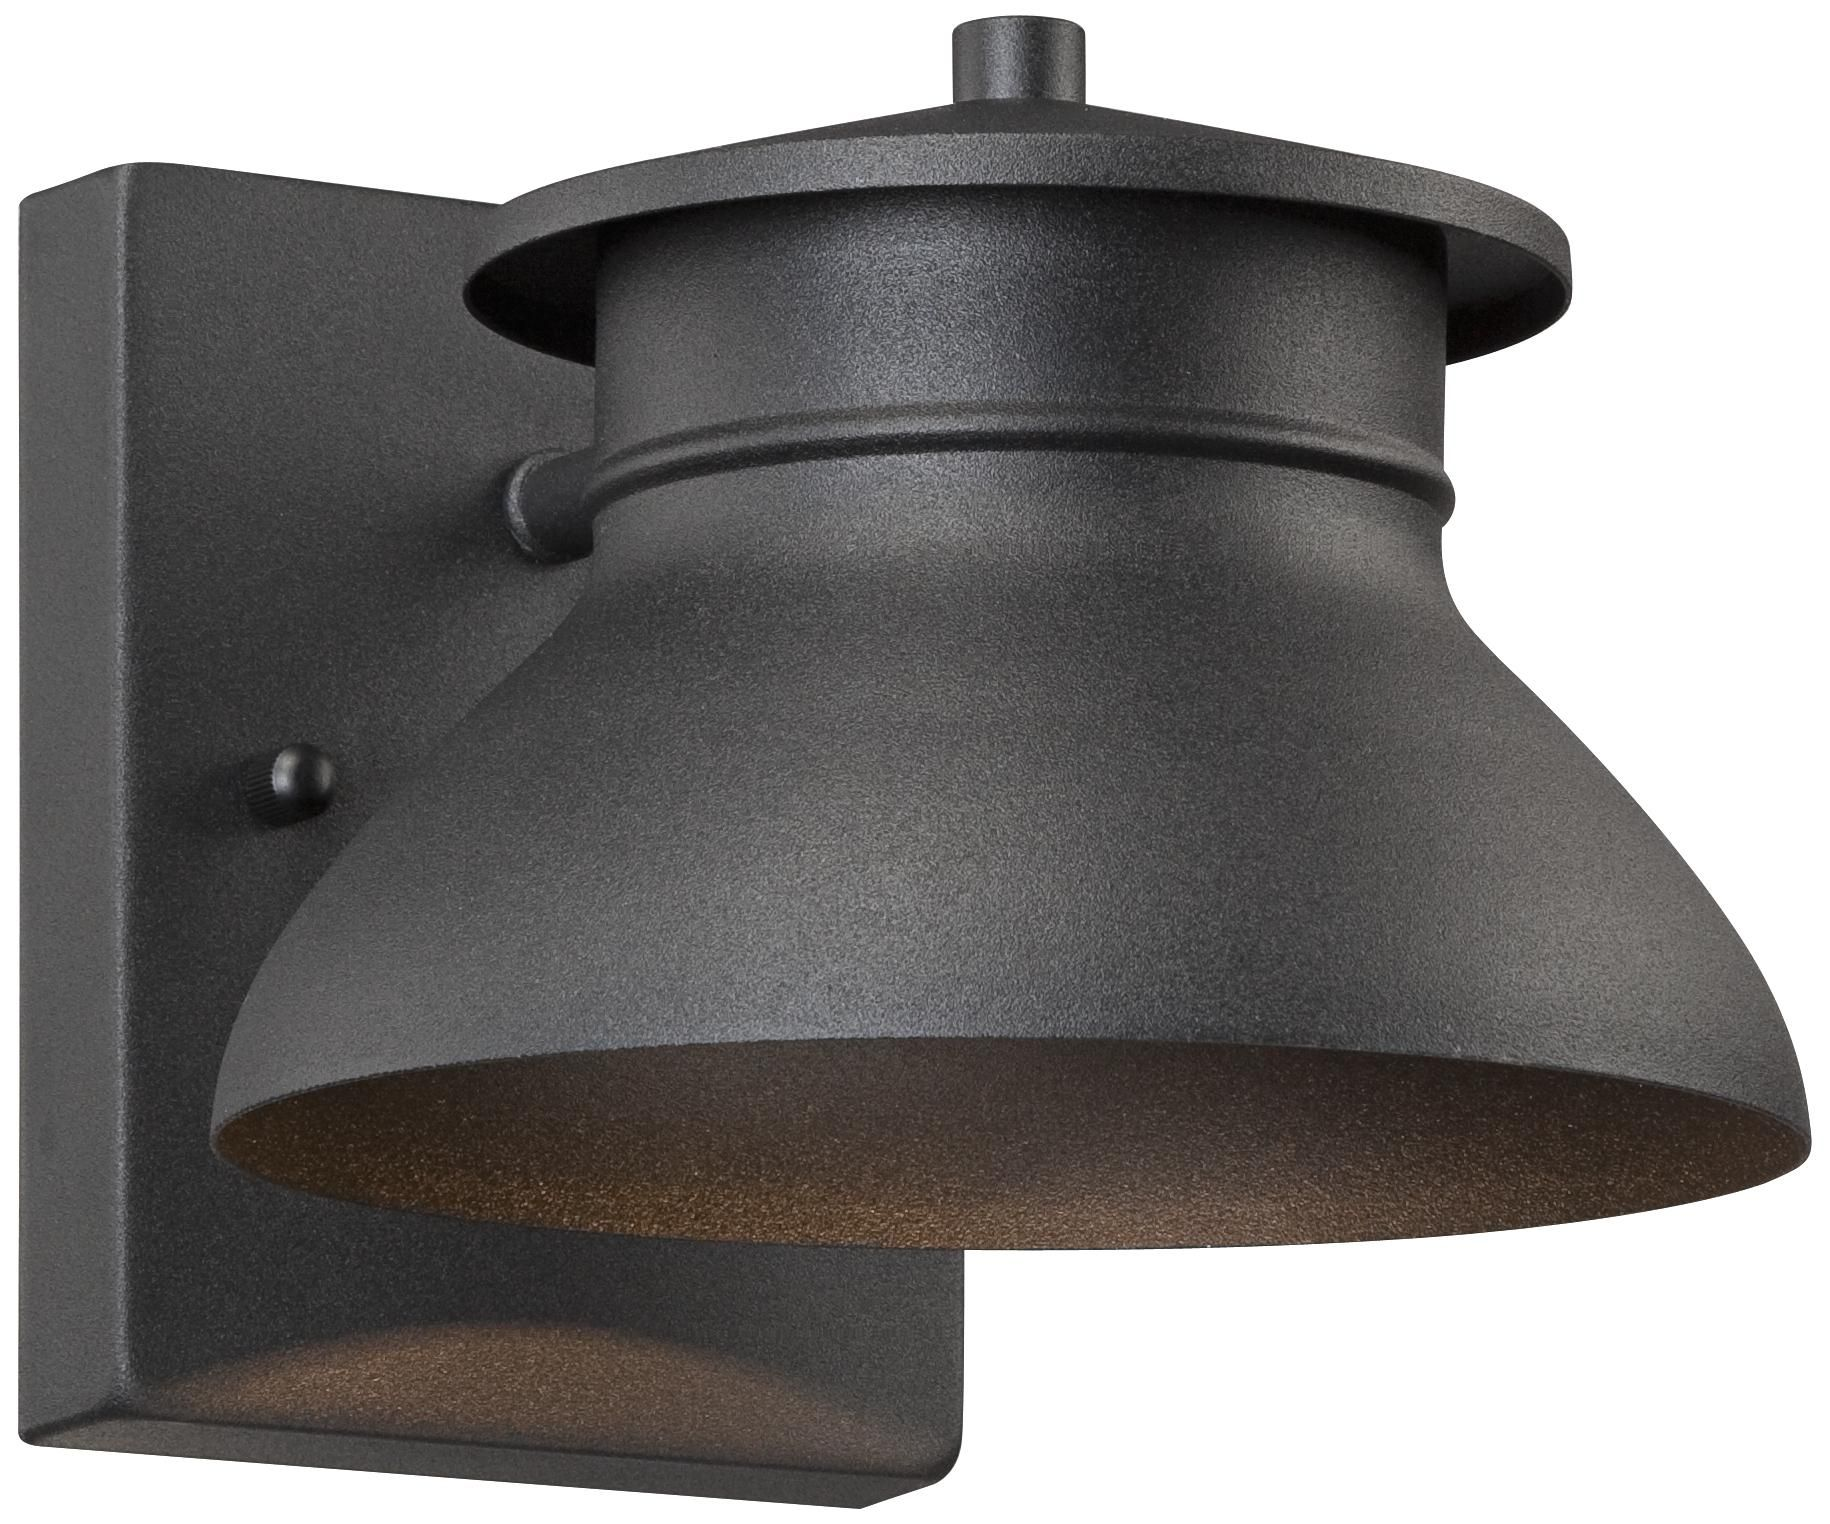 Led Energy Efficient Black 5 Quot High Outdoor Wall Light I